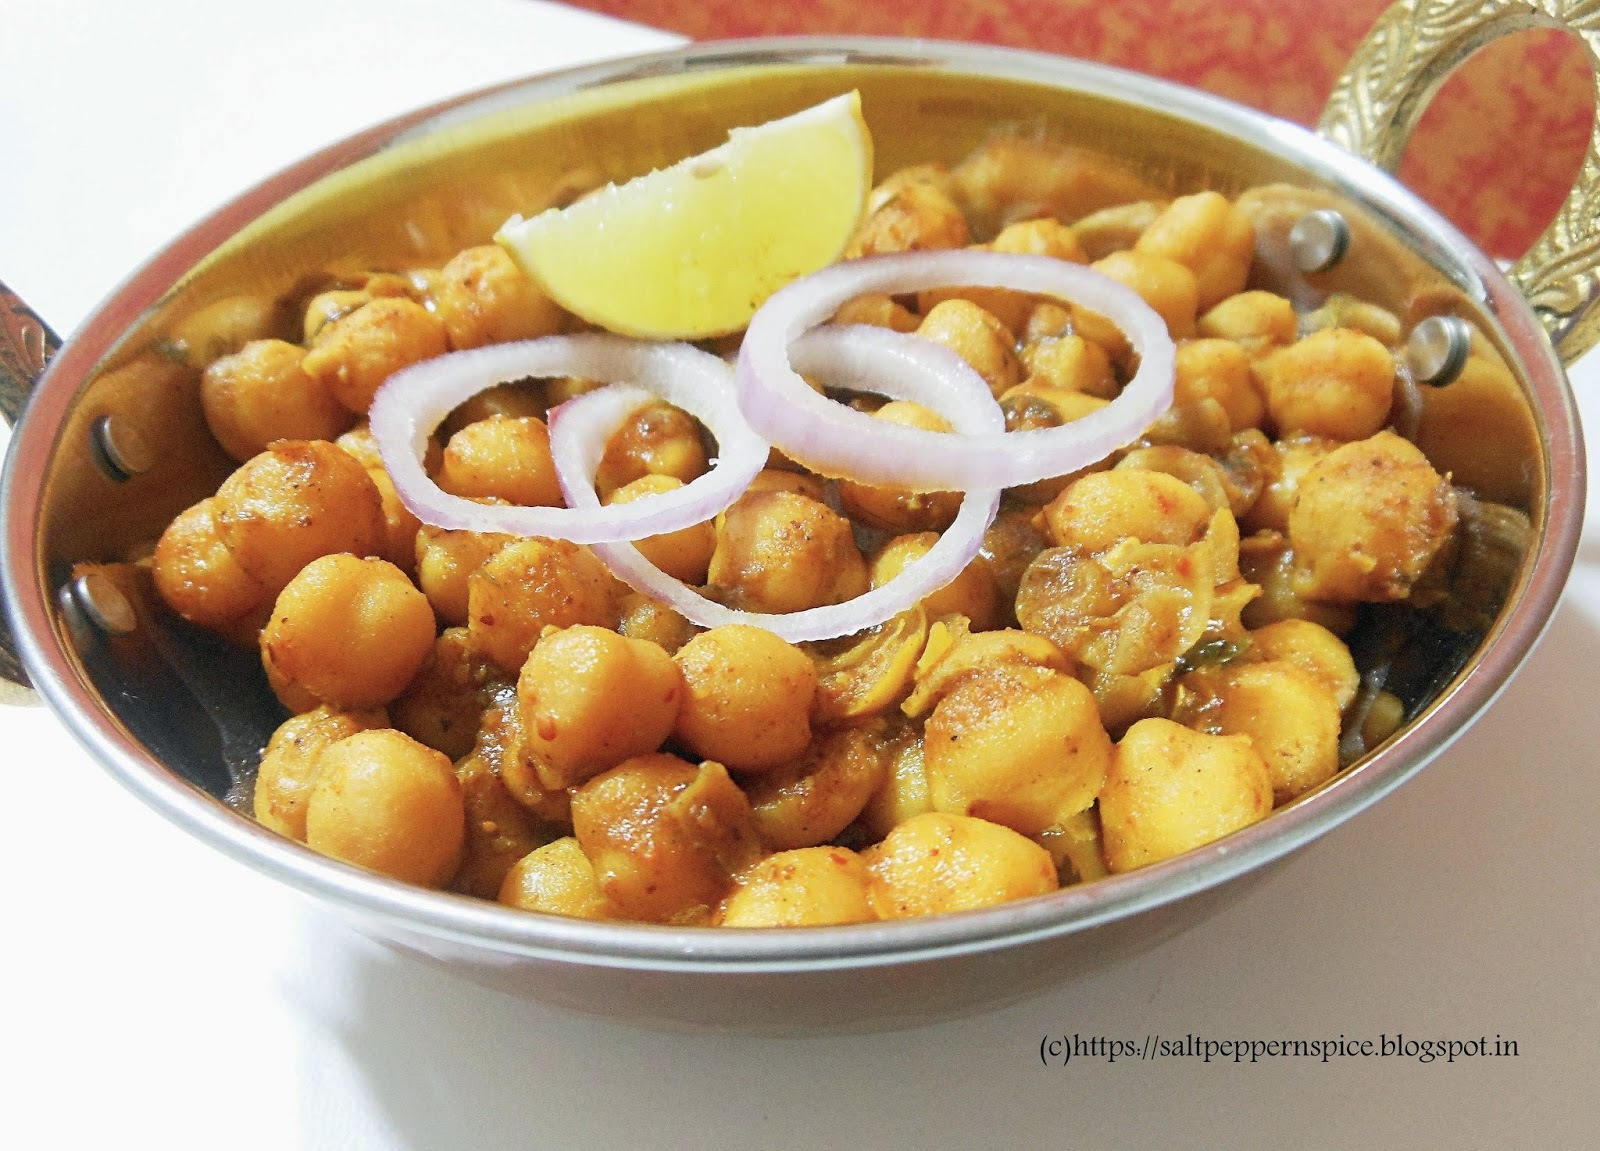 Punjabi Chhole Recipe for Chhole Bhature